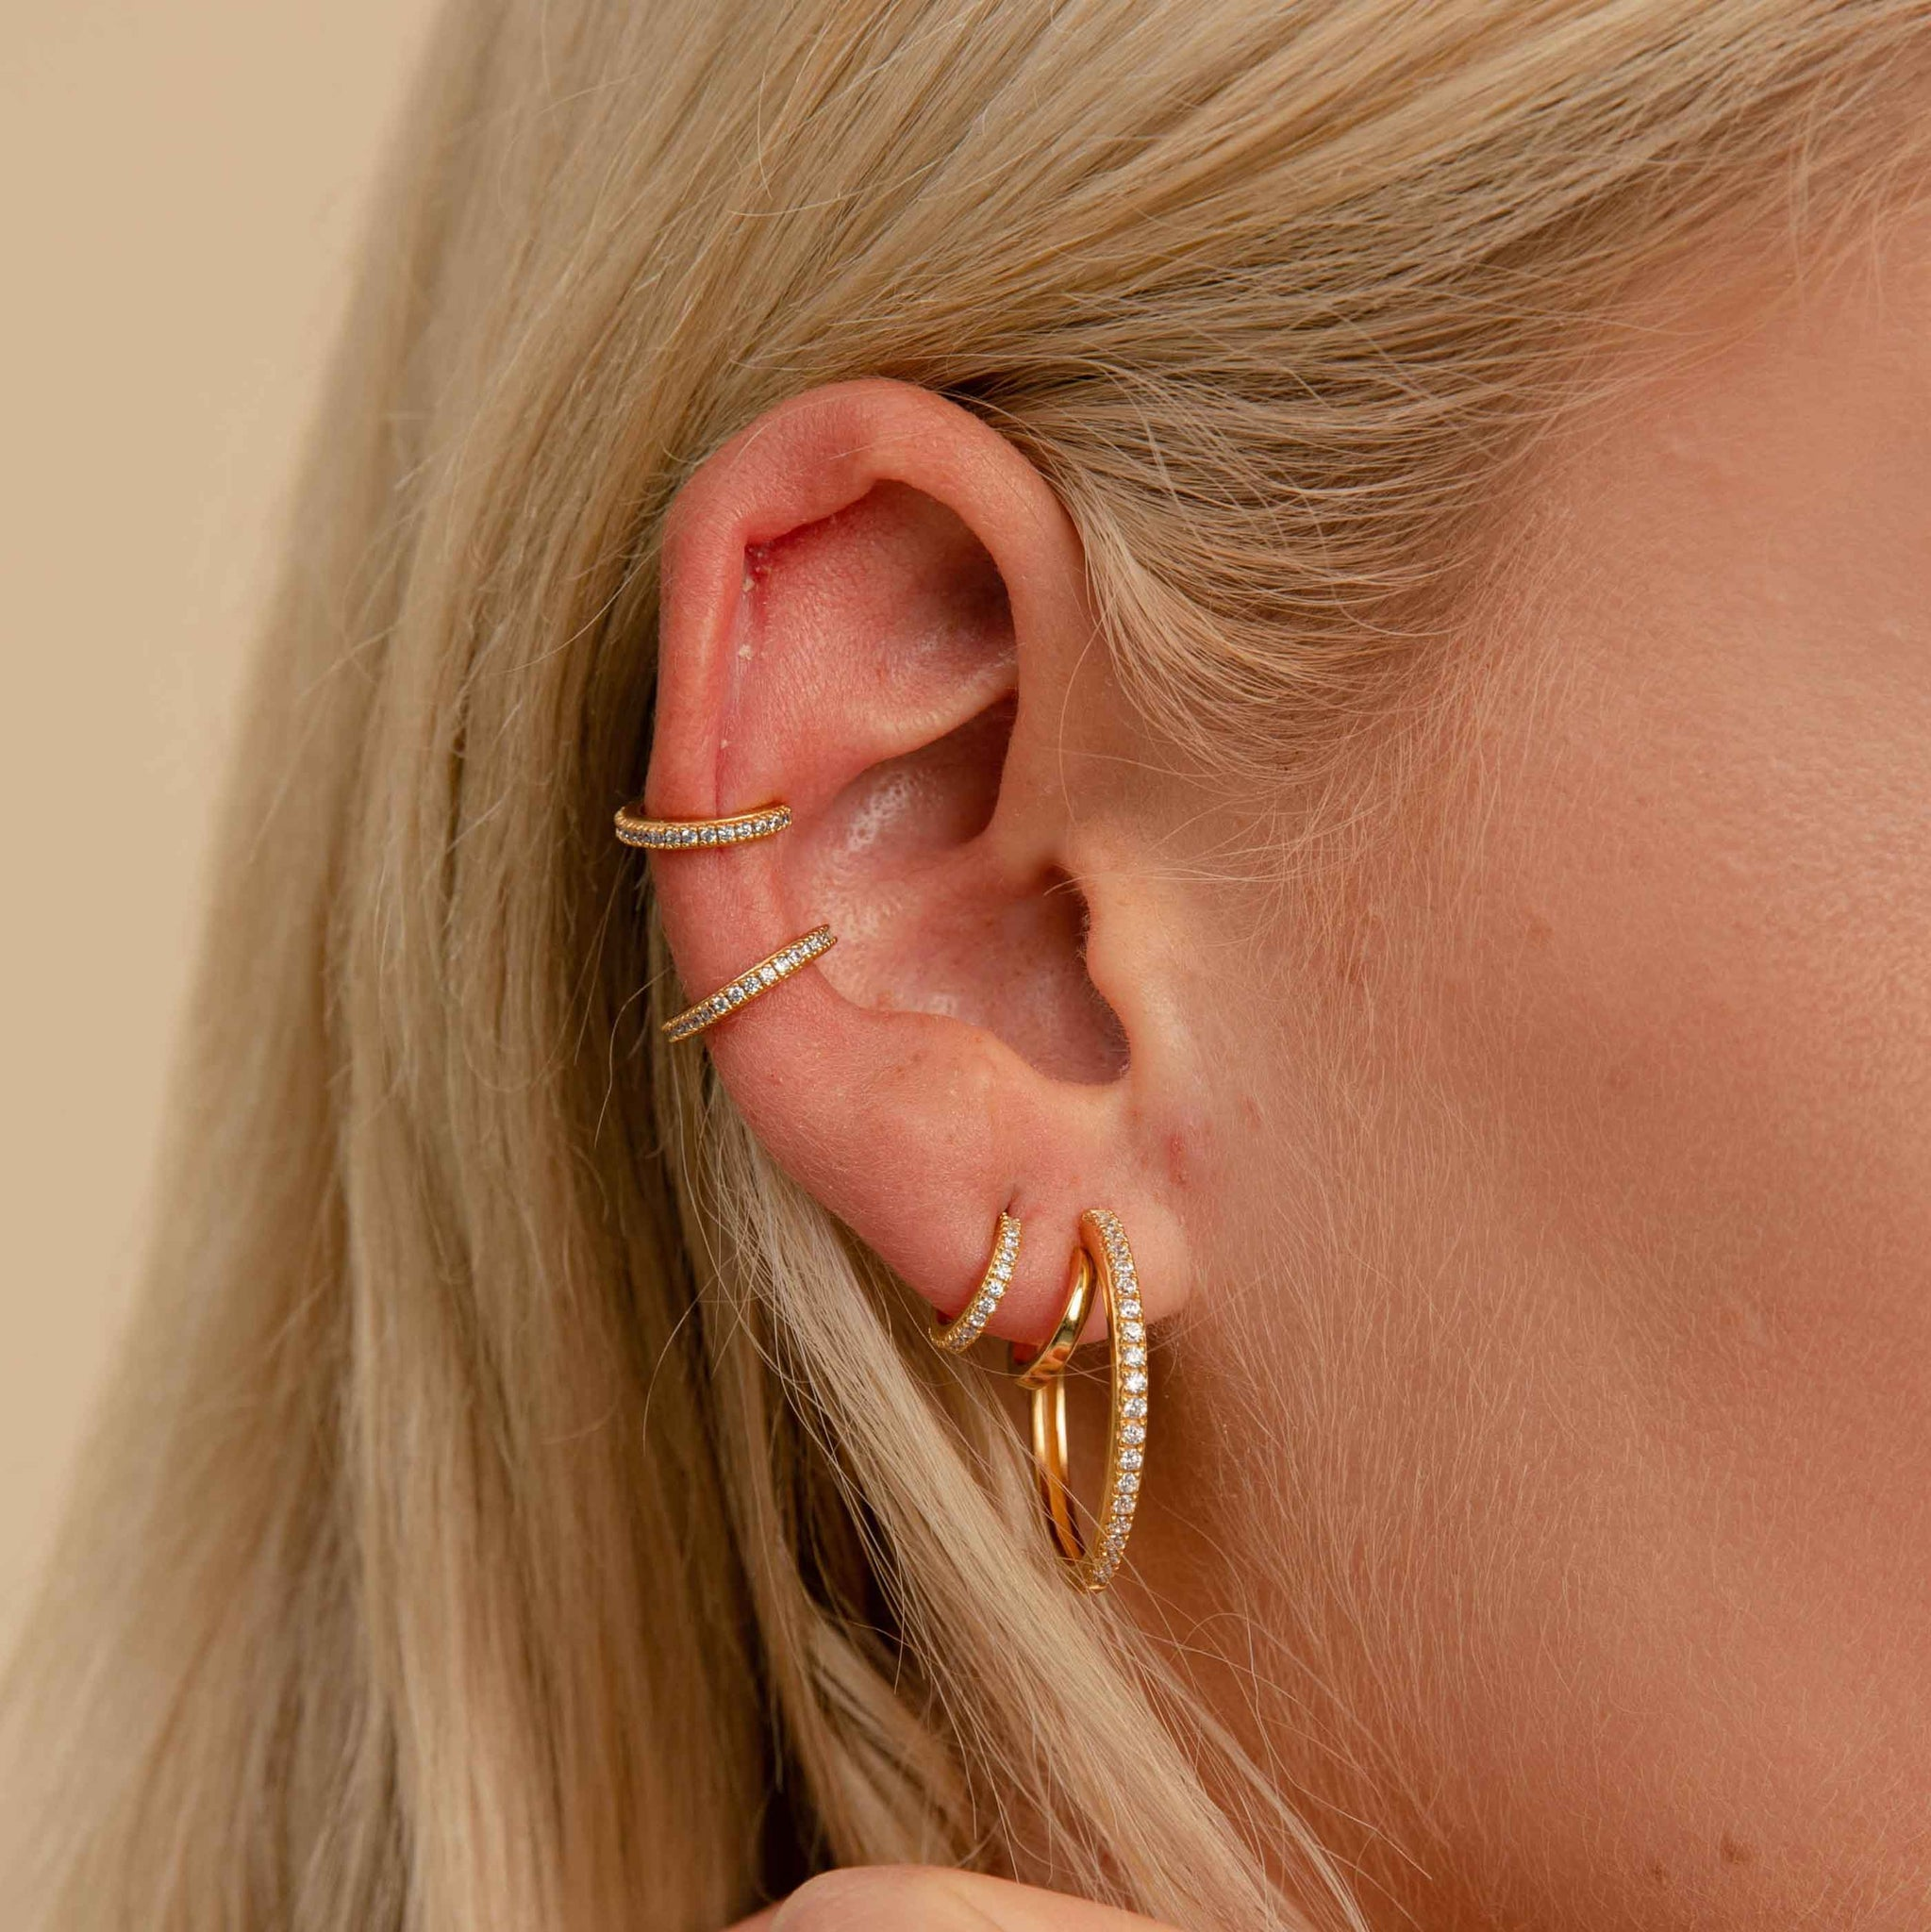 Crystal Ear Cuff in Gold worn with jewelled earrings